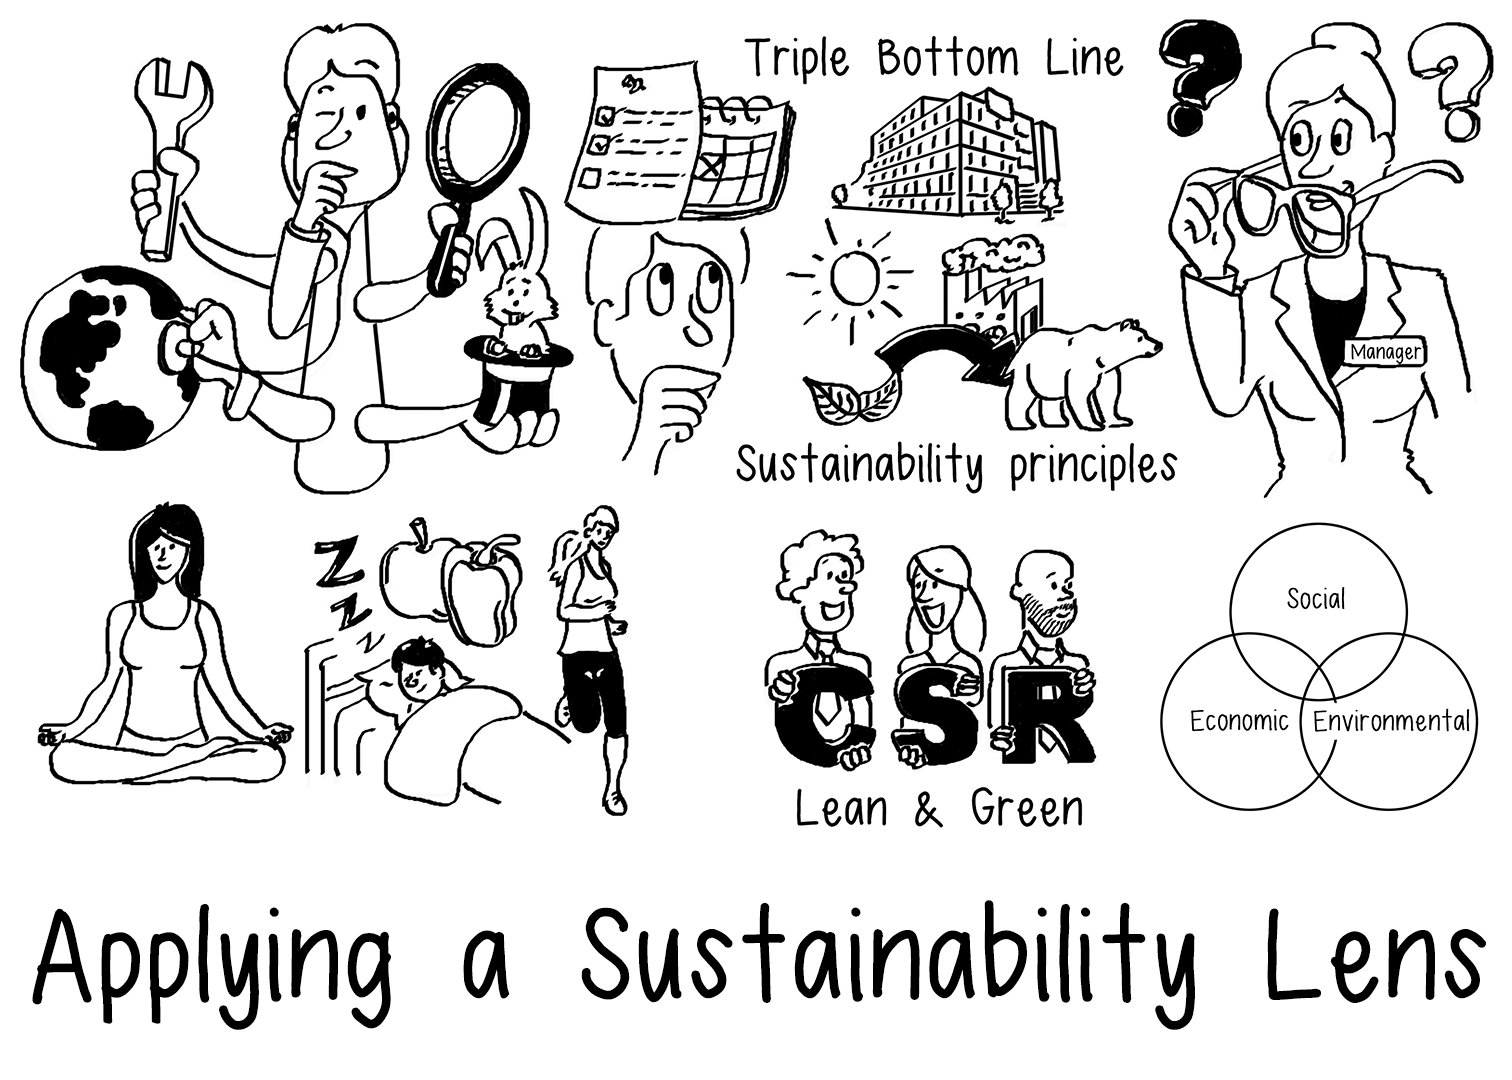 Applying a Sustainability Lens